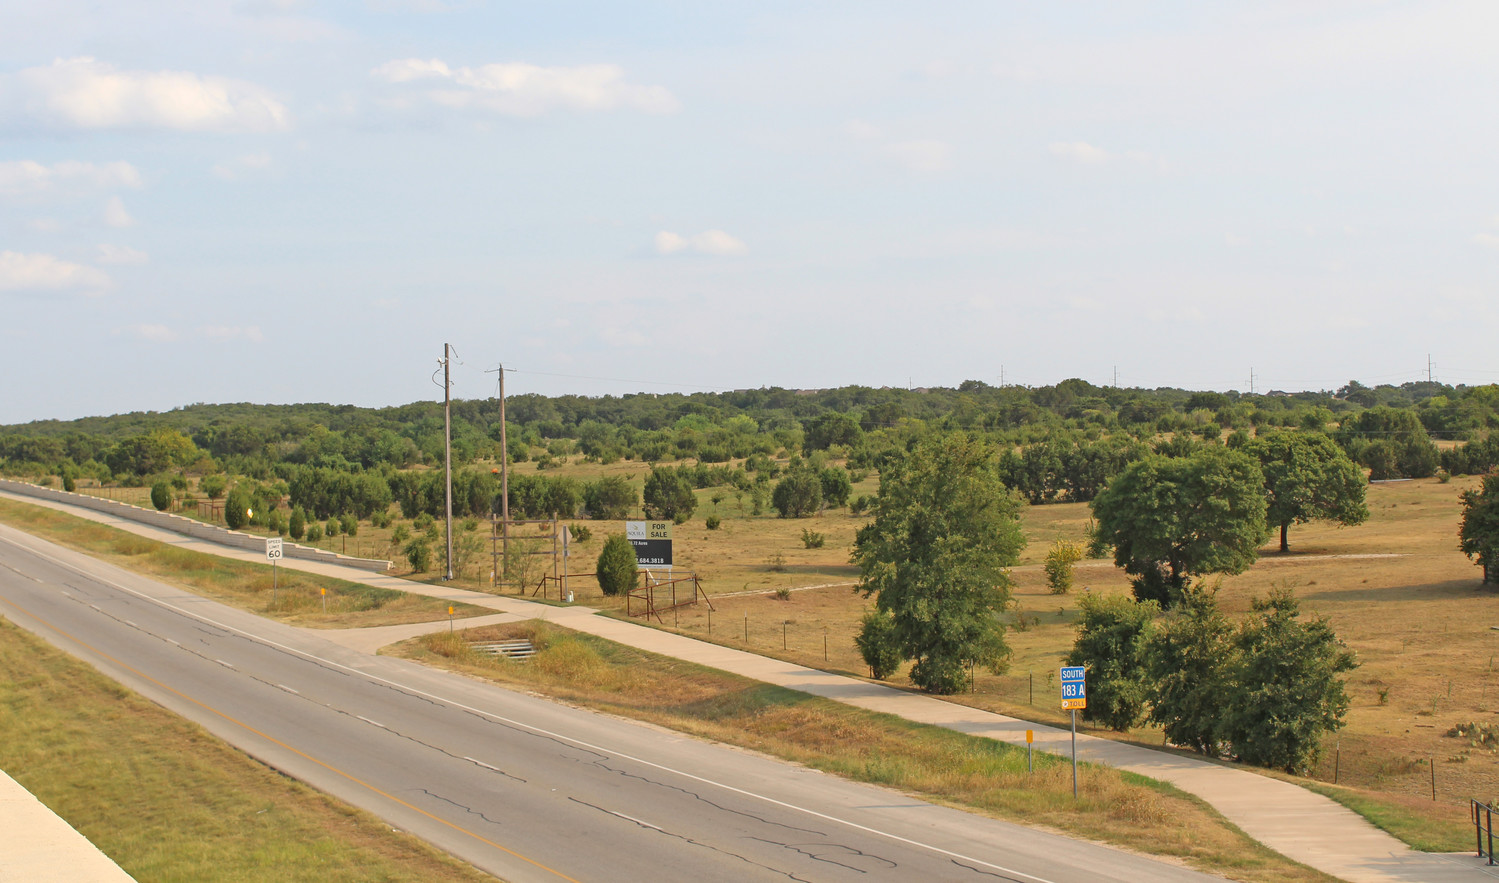 A view of the proposed site of the Leander Springs mixed-use development southwest of the intersection of RM 2243 and the 183A toll road.